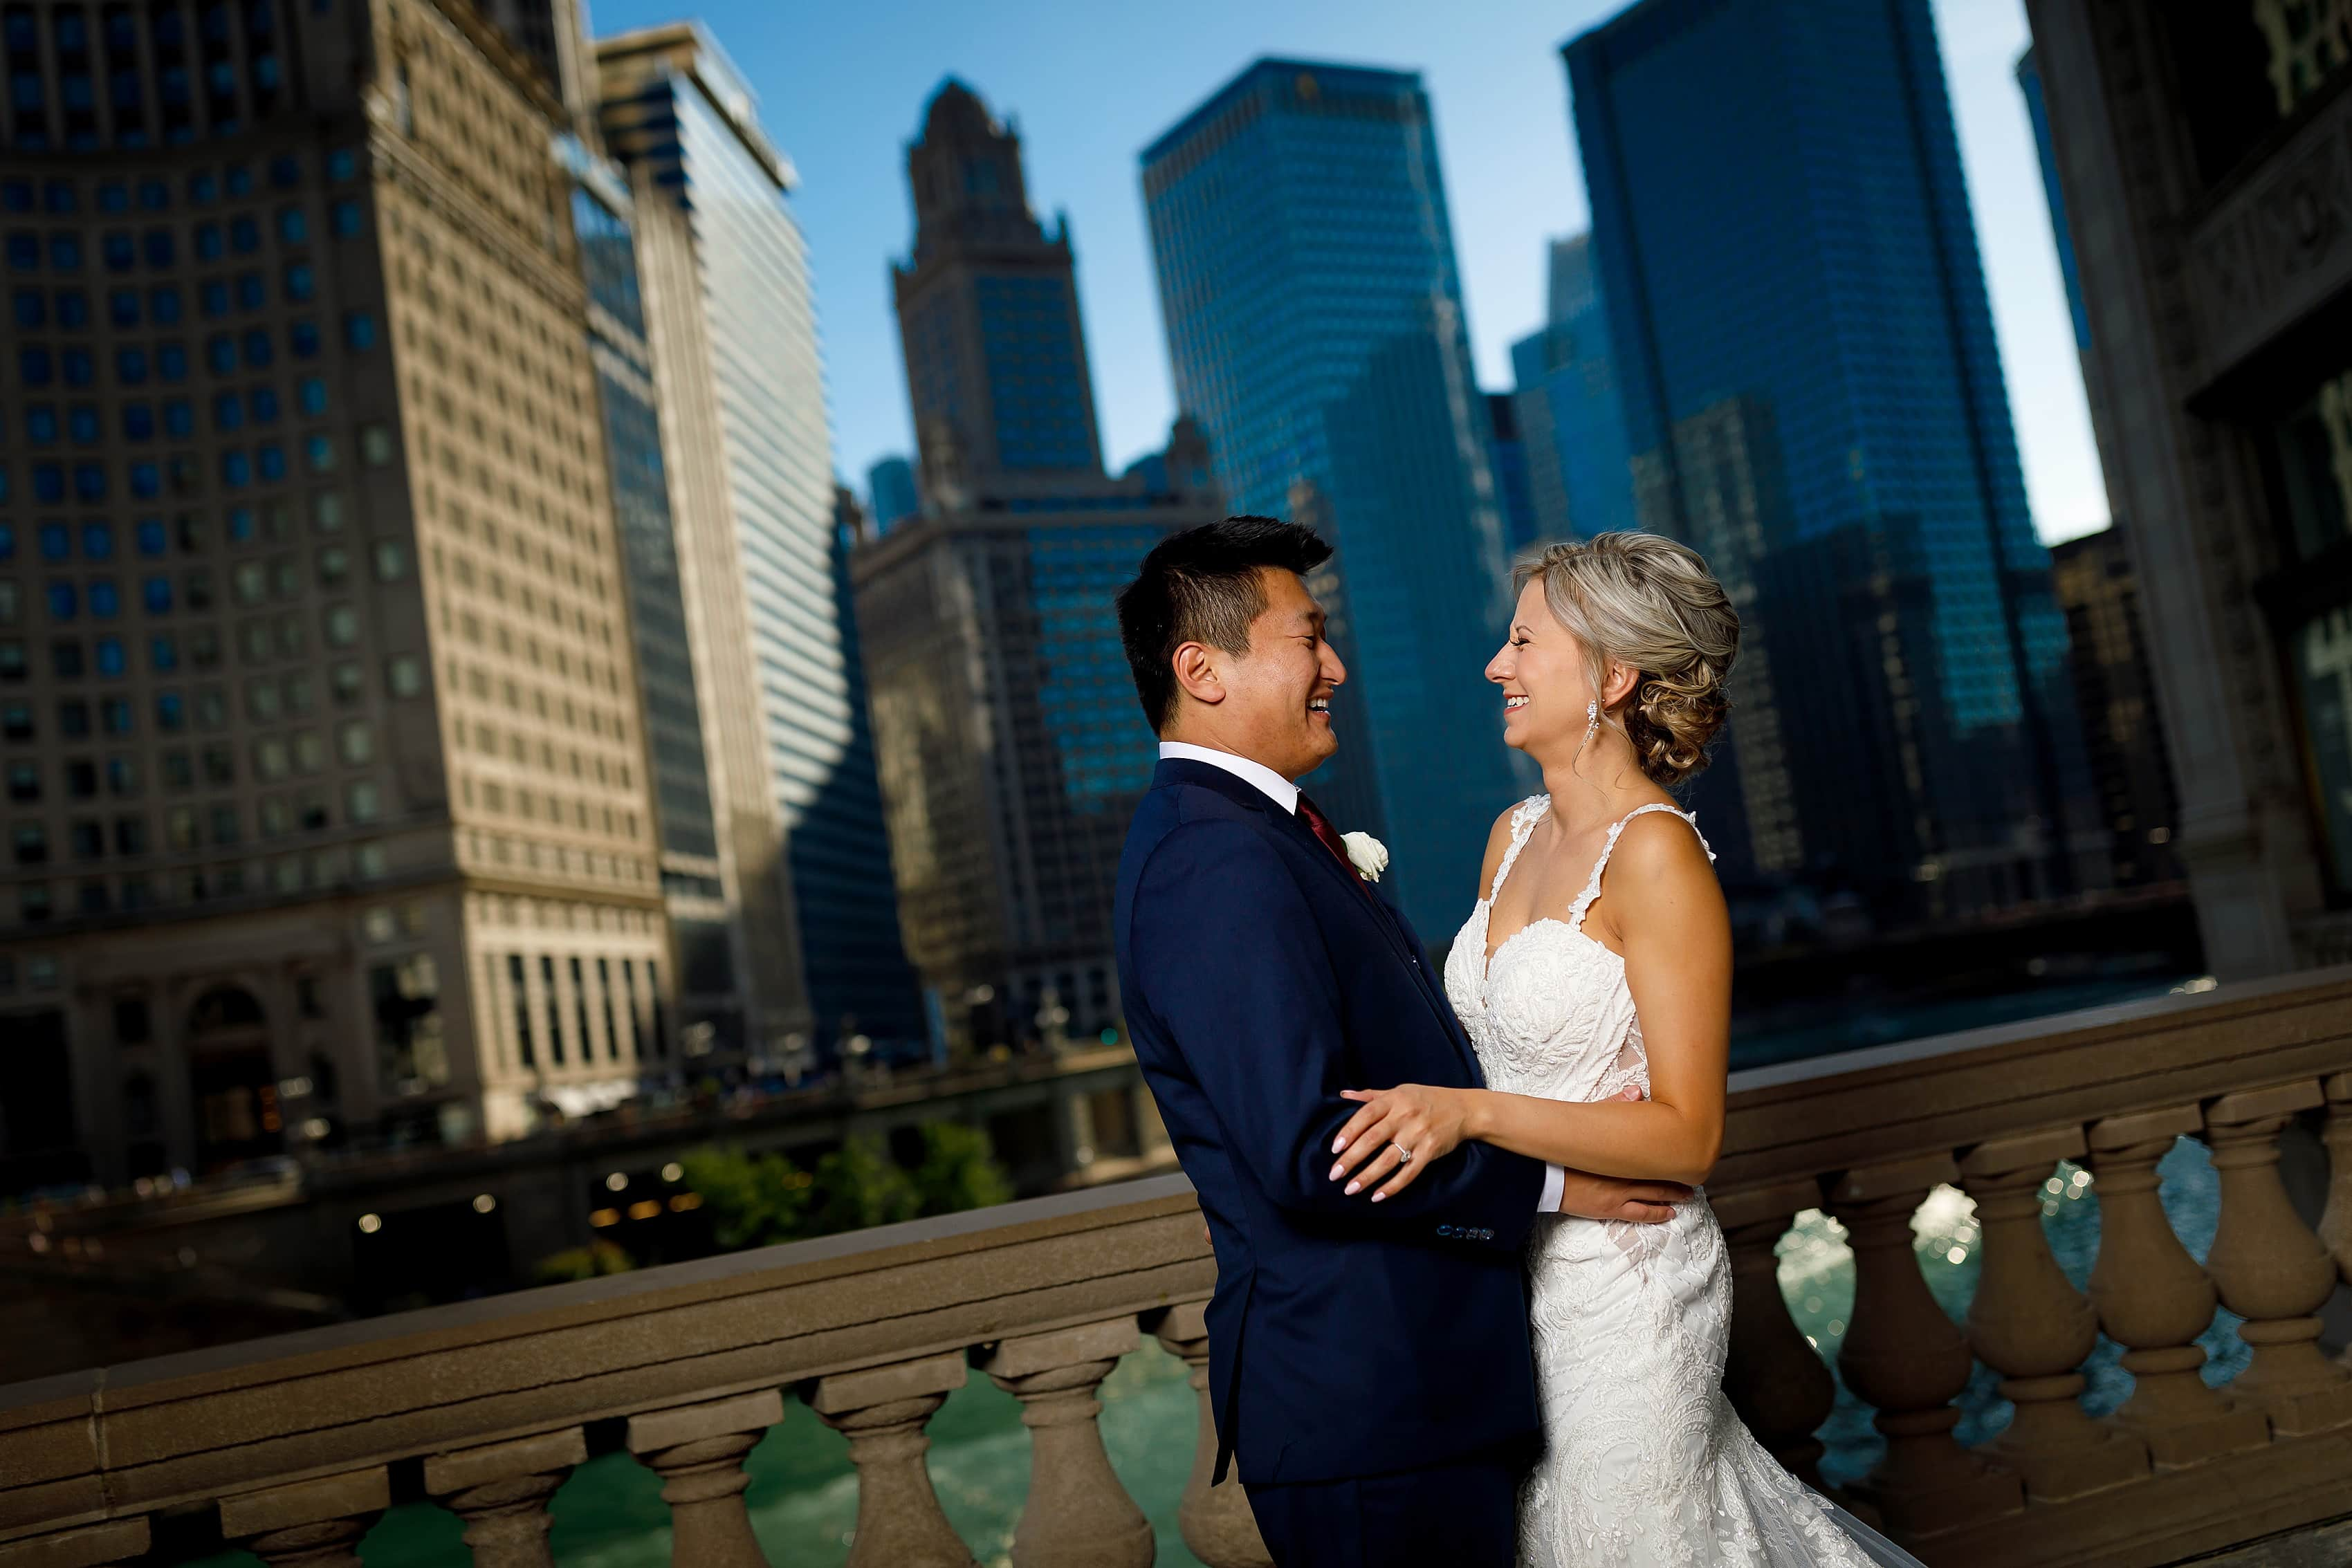 Bride and groom pose for a portrait outside the Wrigley Building overlooking the buildings on the Chicago River